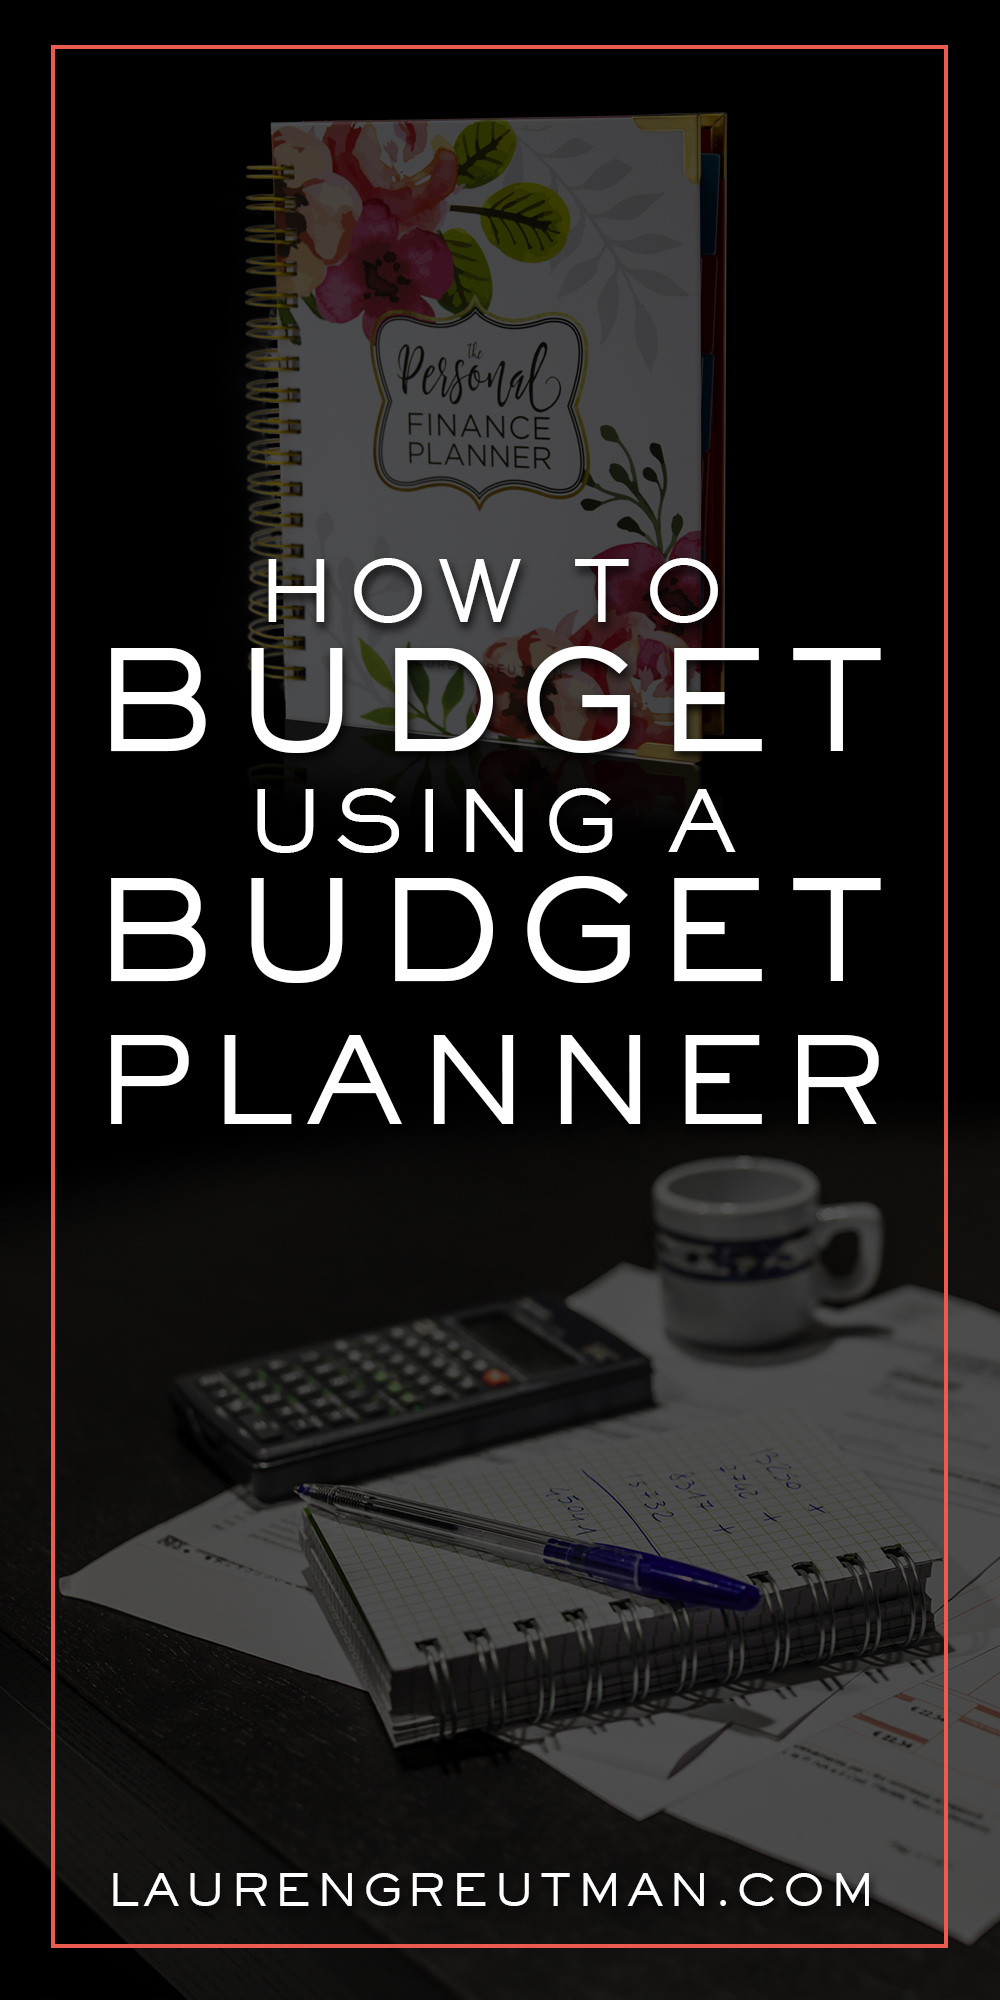 Using a Budget Planner can be the BEST THING for a pen and paper kind of person. Here's how to do it and what to look for!